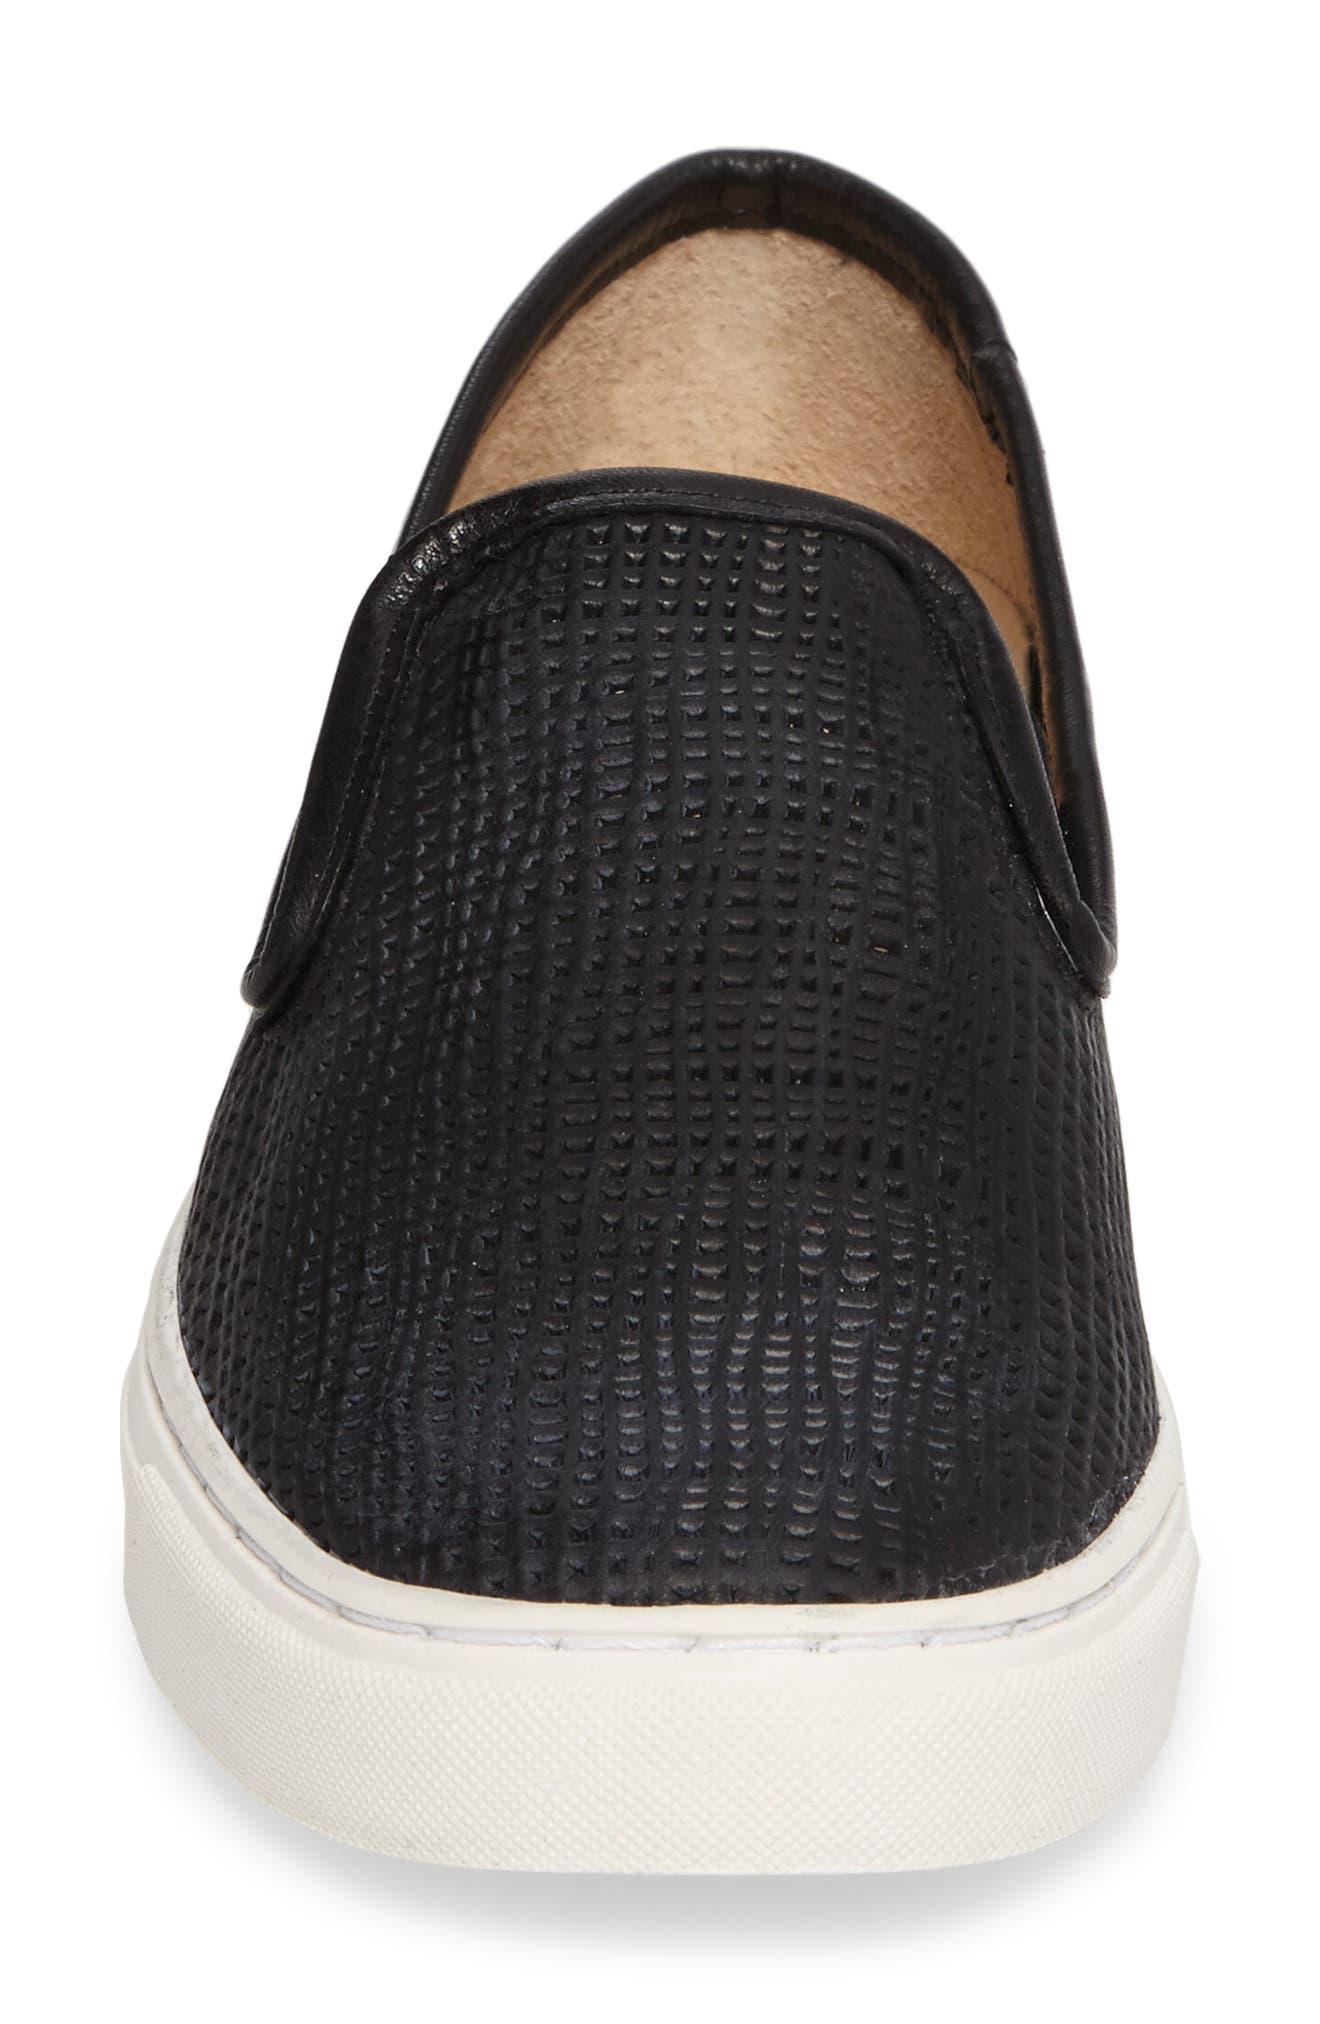 Becker Perforated Slip-On Sneaker,                             Alternate thumbnail 4, color,                             Black Weave